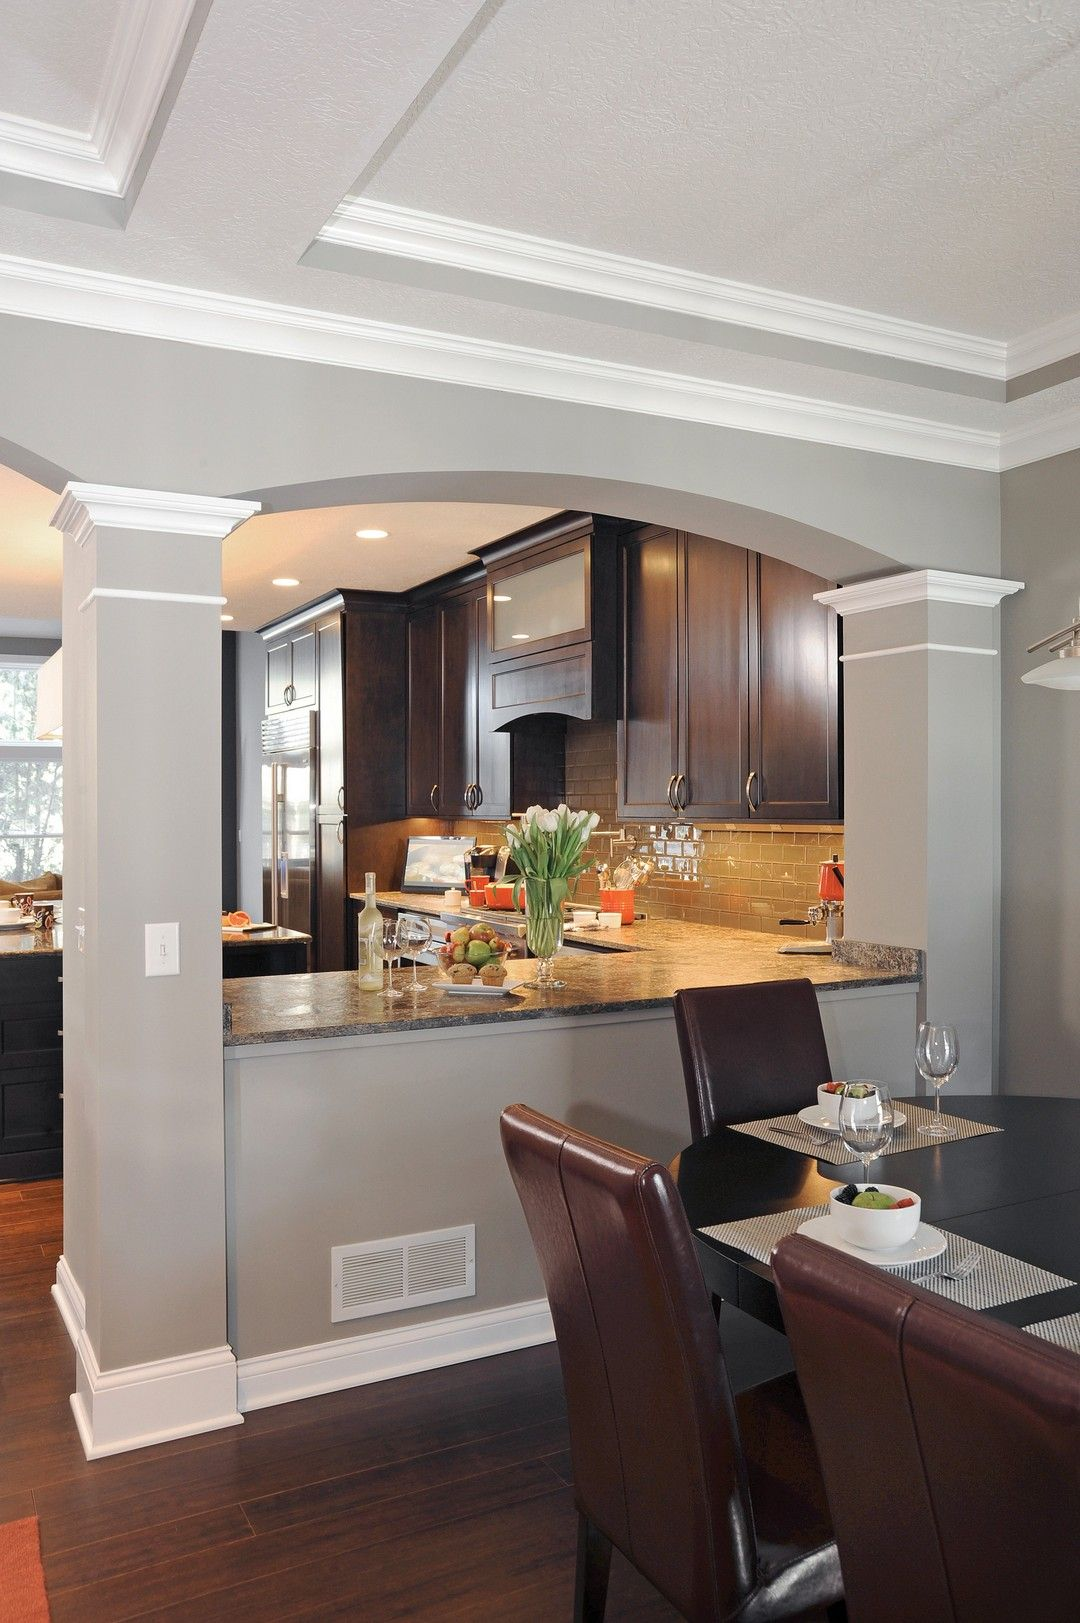 Taupe Walls Interior Inspiration 2017 99 Taupe Walls Dark Cabinets Stone